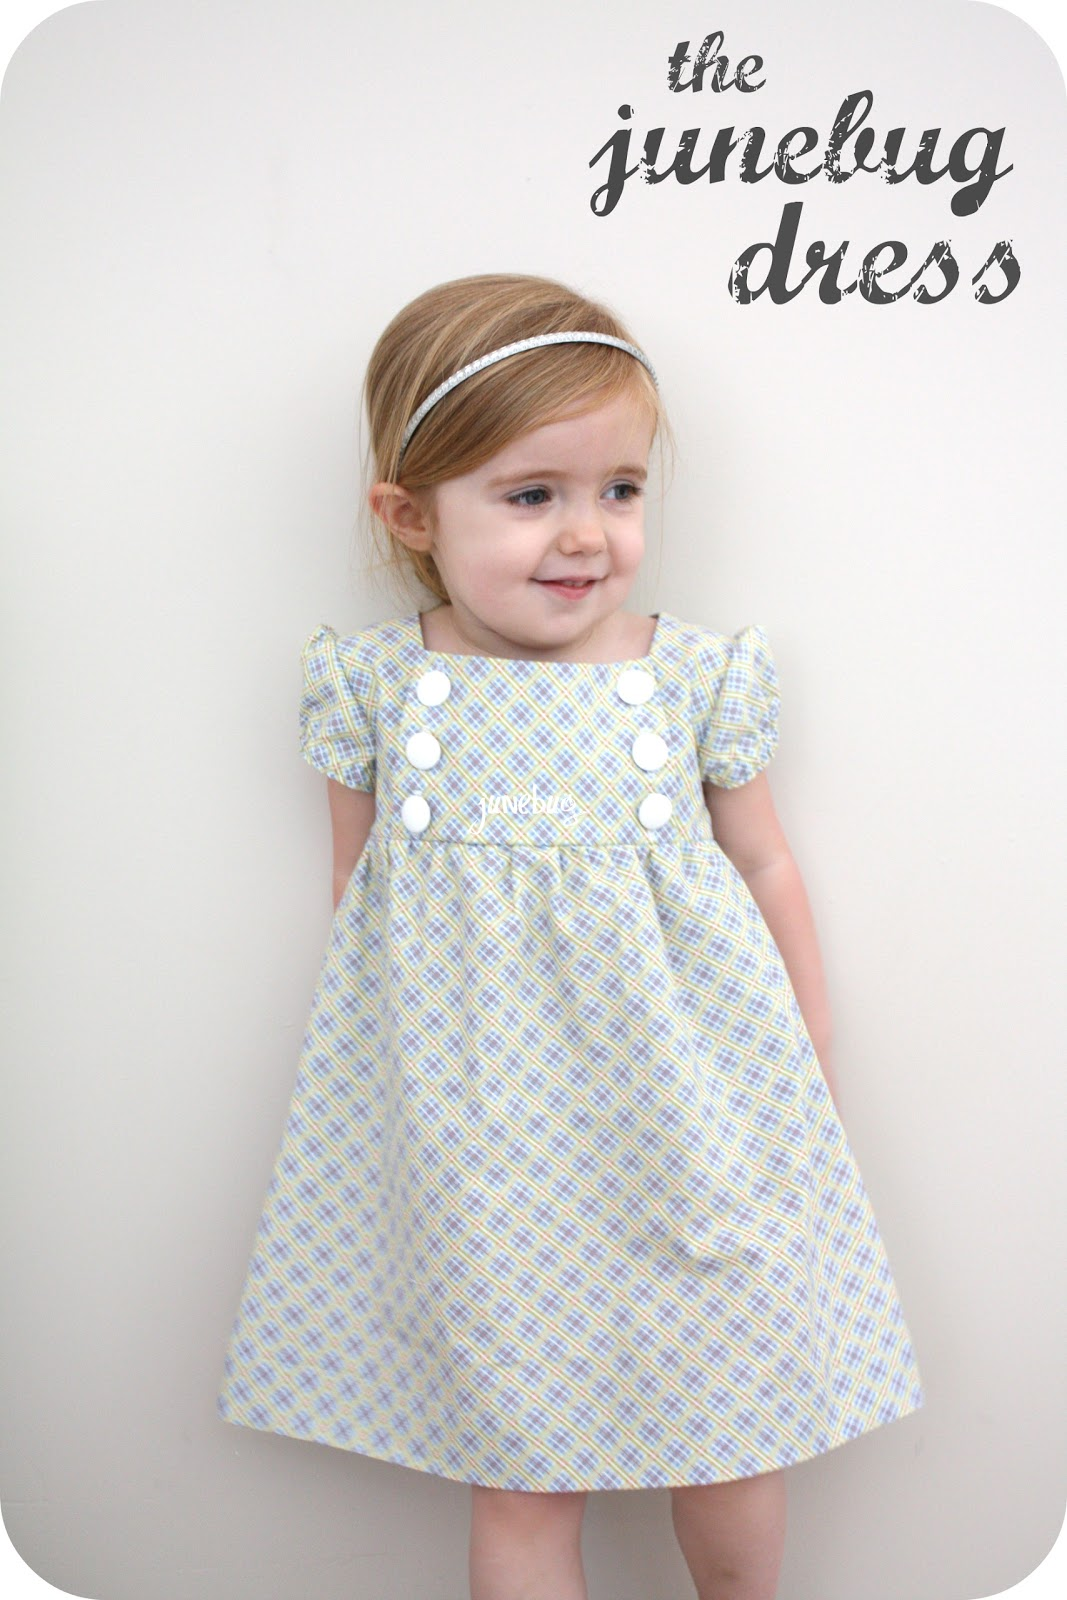 toddler girl dresses. She's ready for the holidays with cute toddler girl dresses! From casual winter dresses to fancy Christmas dresses to toddler girl rompers, there's a dress for every day.